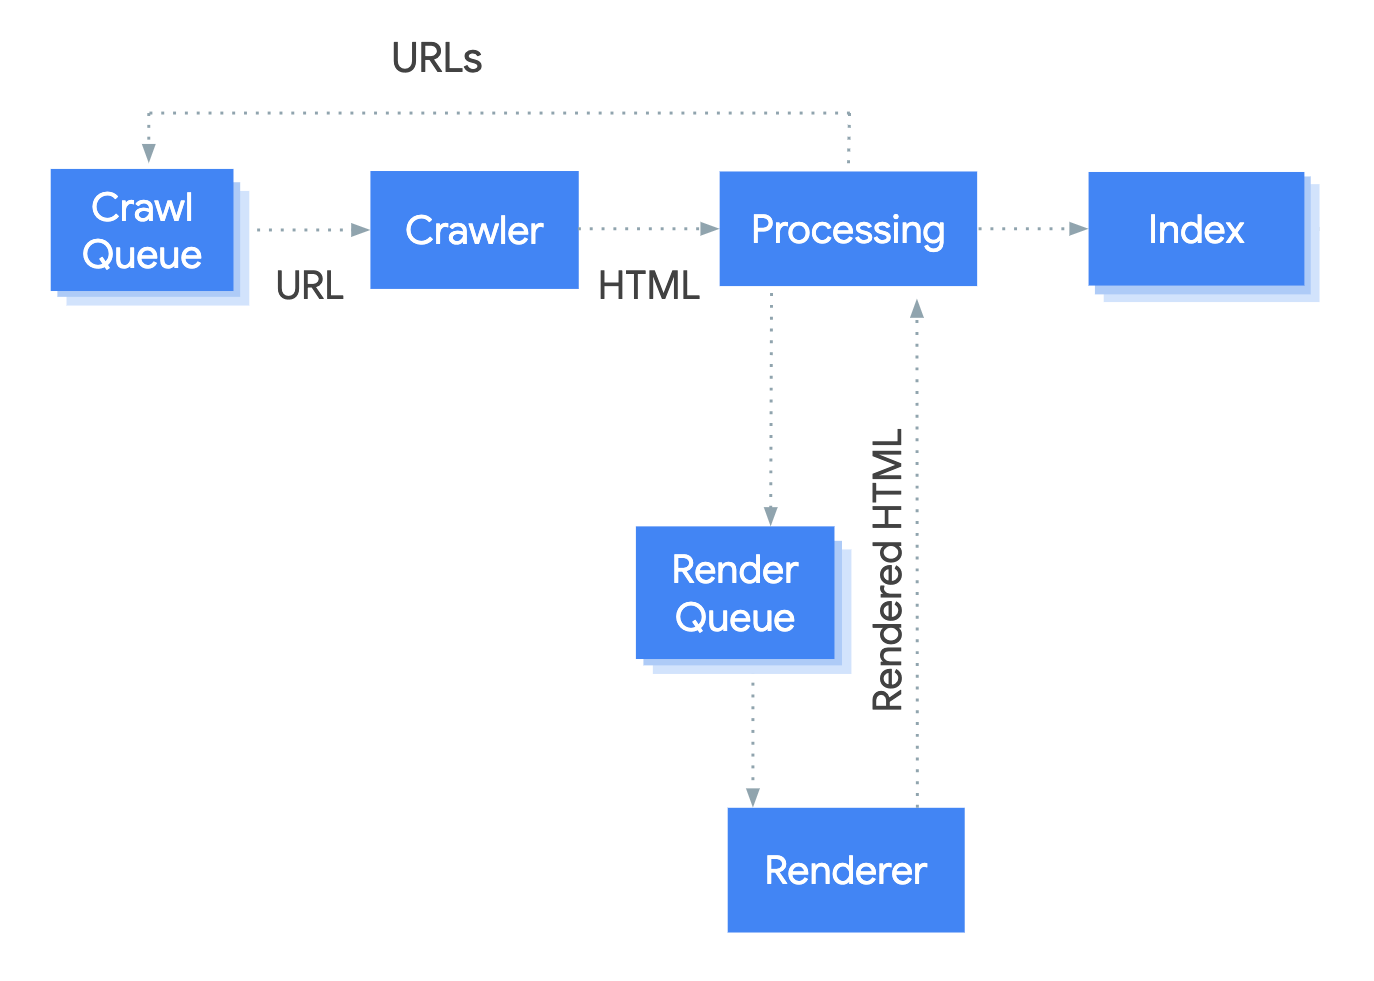 Googlebot takes a URL from the crawl queue,        crawls it, then passes it into the processing stage. The processing stage extracts links that        go back on the crawl queue and queues the page for rendering. The page goes from the render        queue to the renderer which passes the rendered HTML back to processing which indexes the content        and extracts links to put them into the crawl queue.